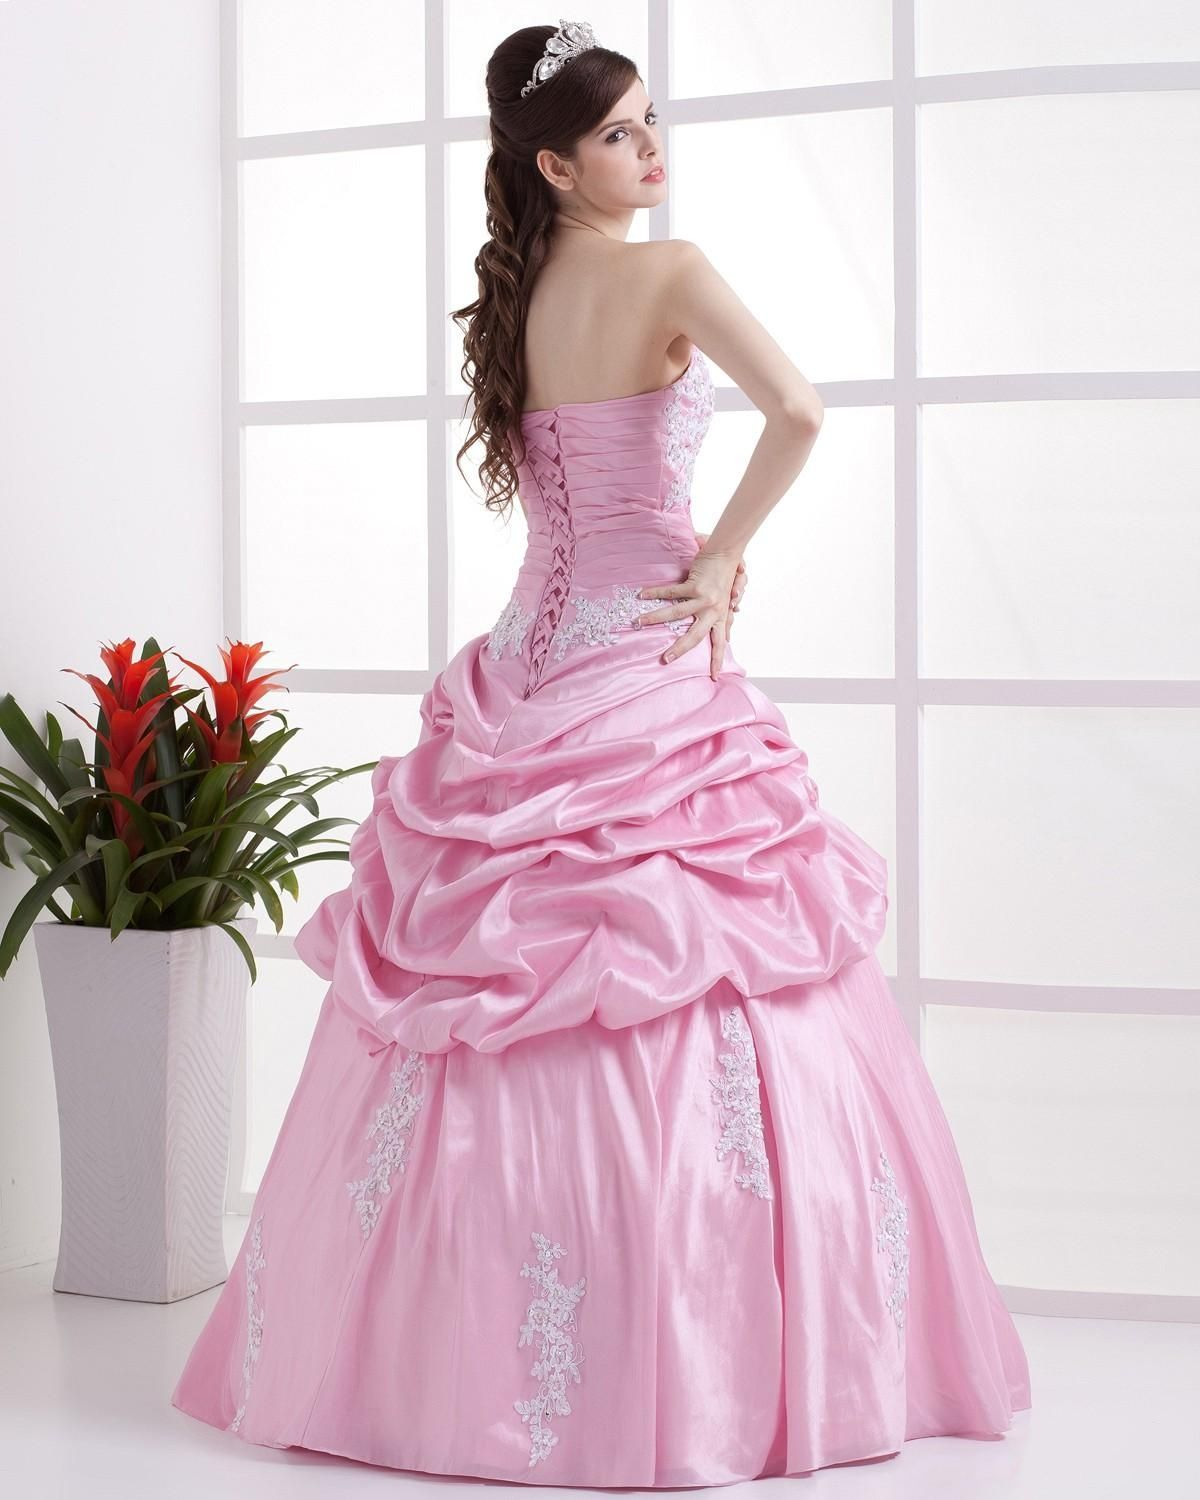 princess gowns | Ball Gown Applique Sweetheart Pink Princess Prom ...